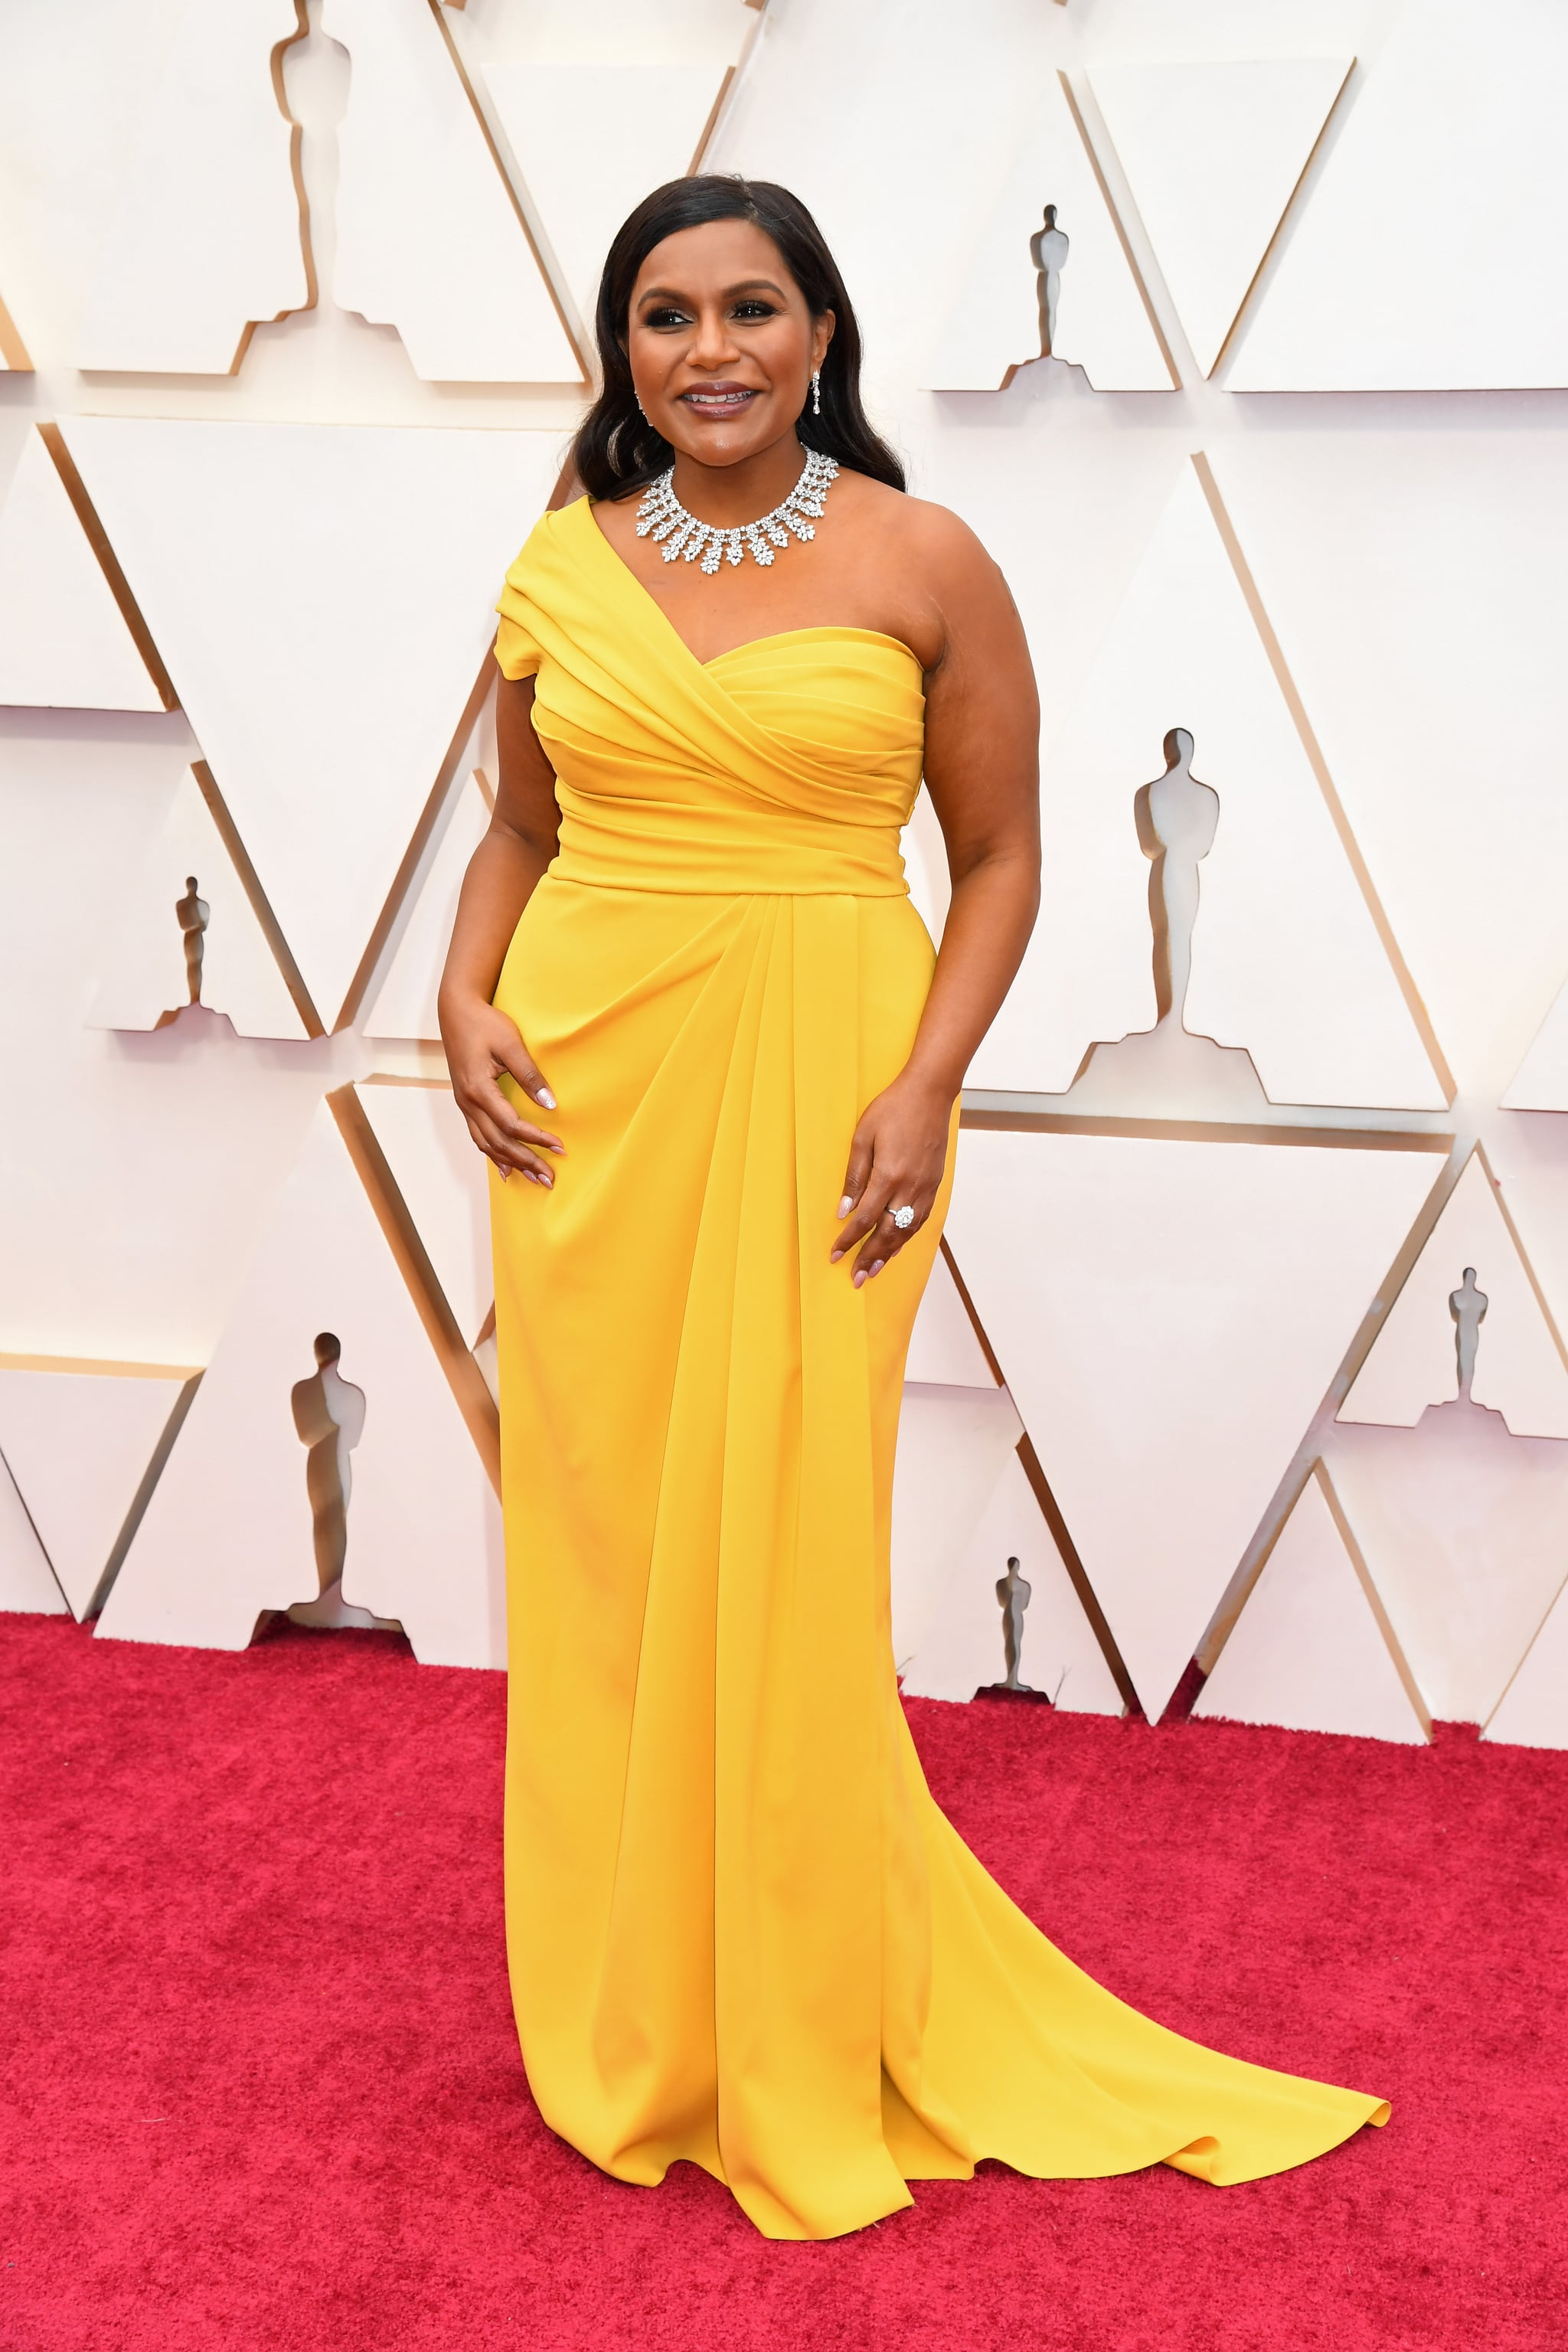 Mindy Kaling at the Oscars 2020 | These Gorgeous Oscars Red Carpet Looks  Ended Award Season With a Bang | POPSUGAR Fashion Photo 64